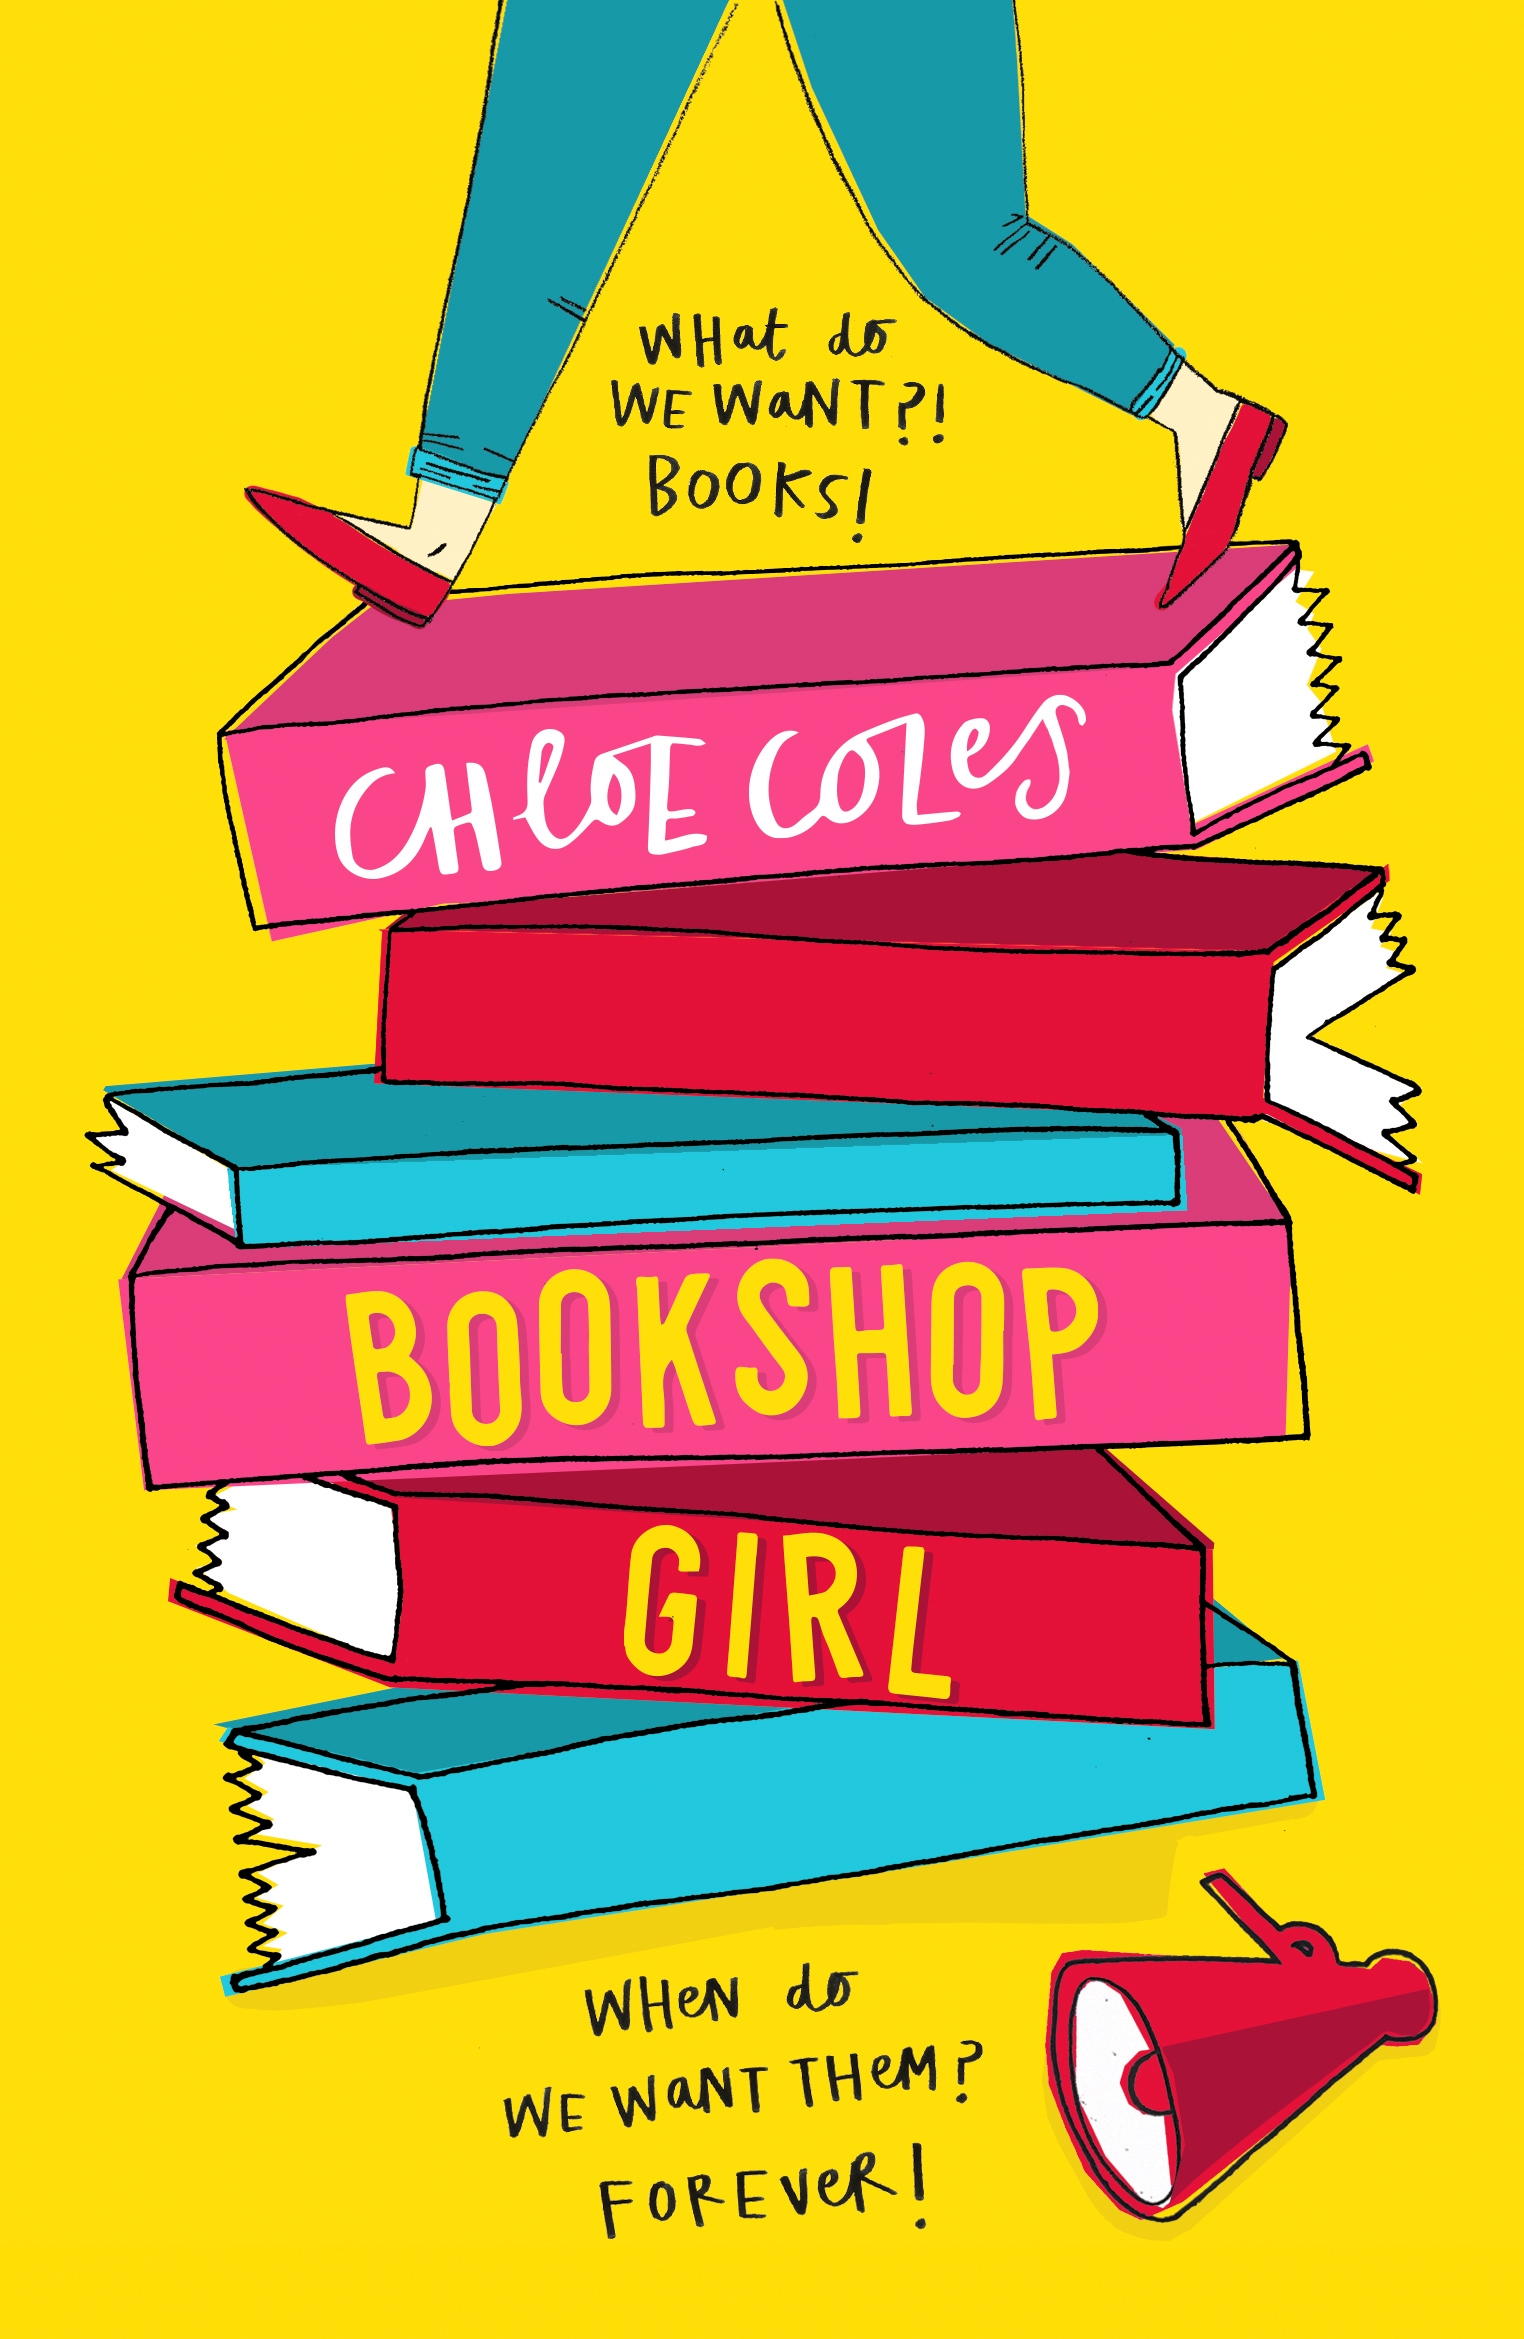 Bookshop Girl by Chloe Coles